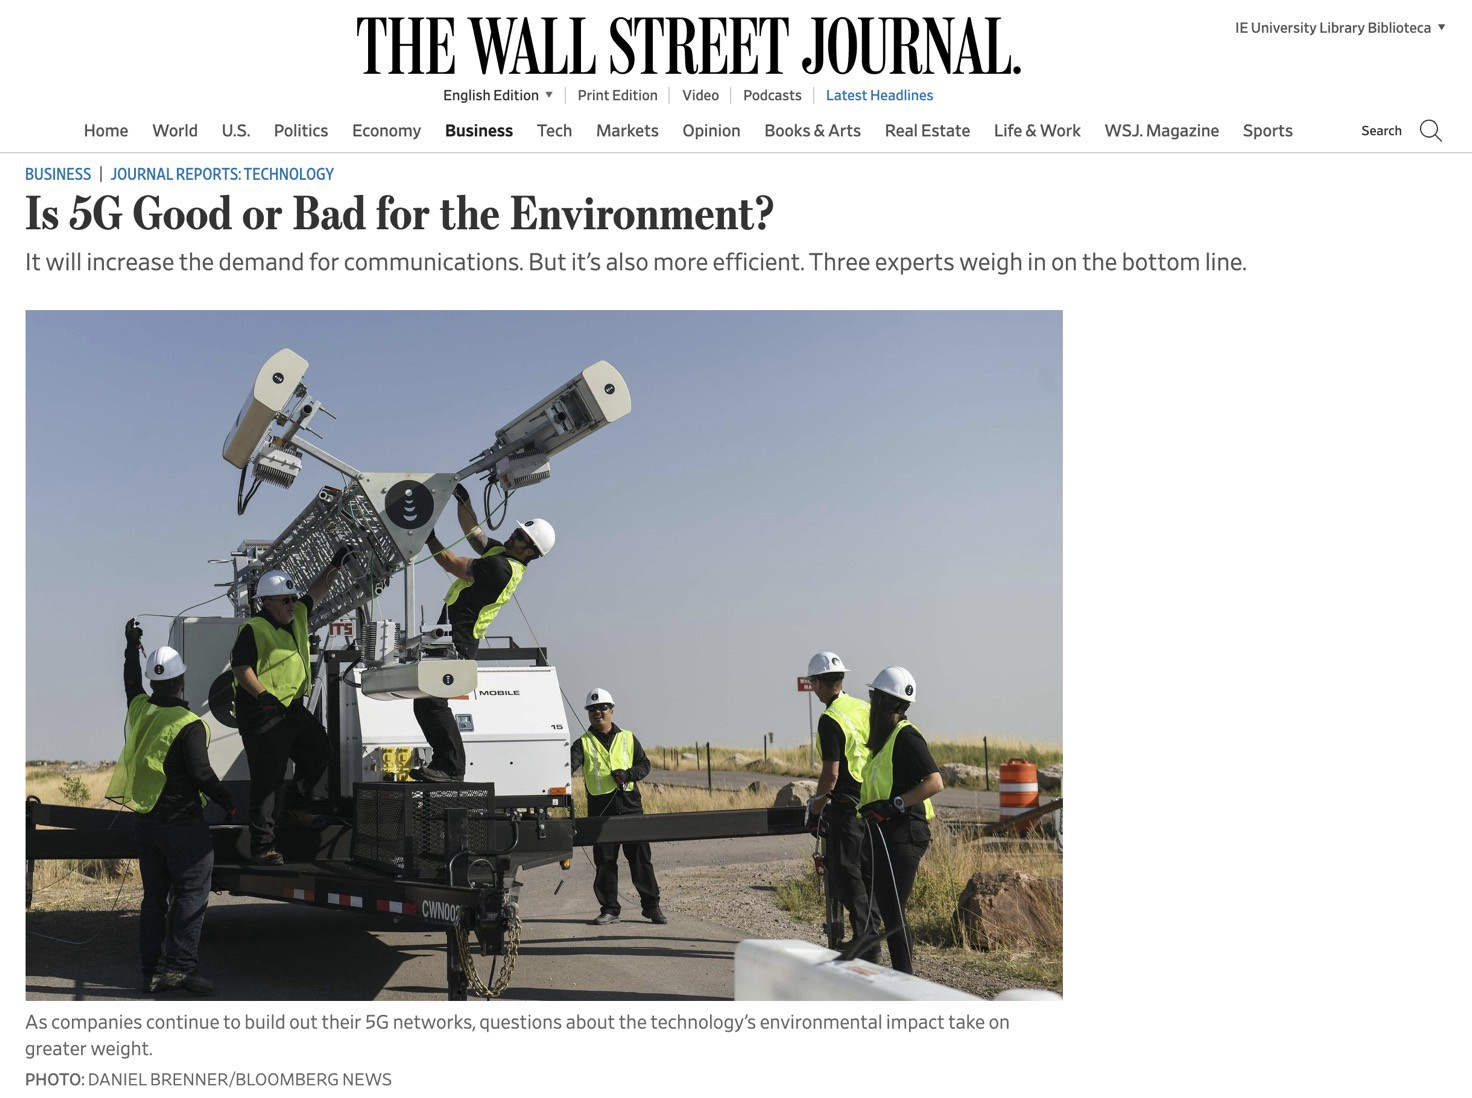 """IMAGE: Screen capture of the article """"Is 5G Good or Bad for the Environment?"""" featured on The Wall Street Journal"""